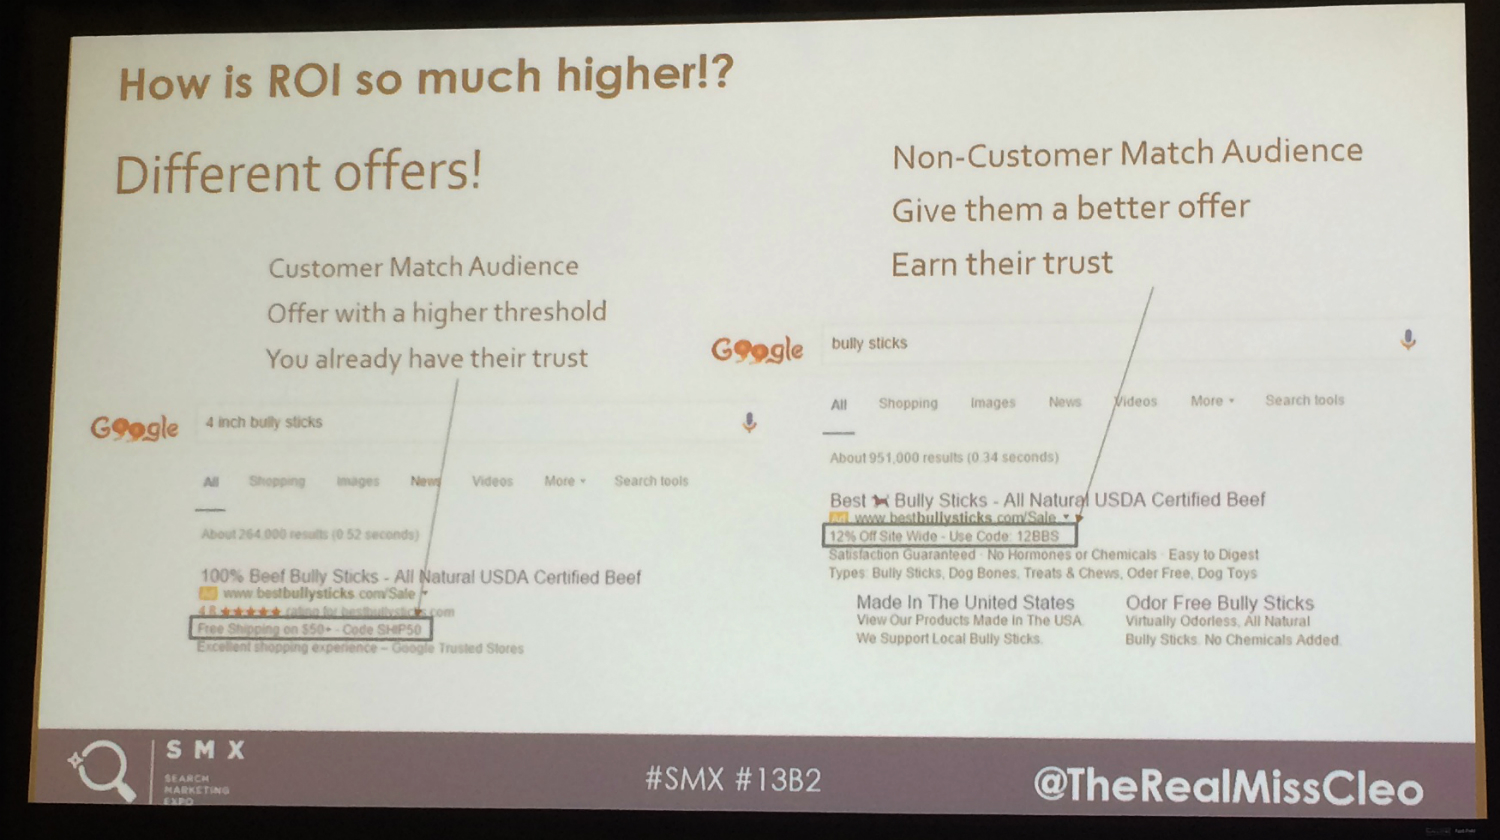 Different offers to increase ROI